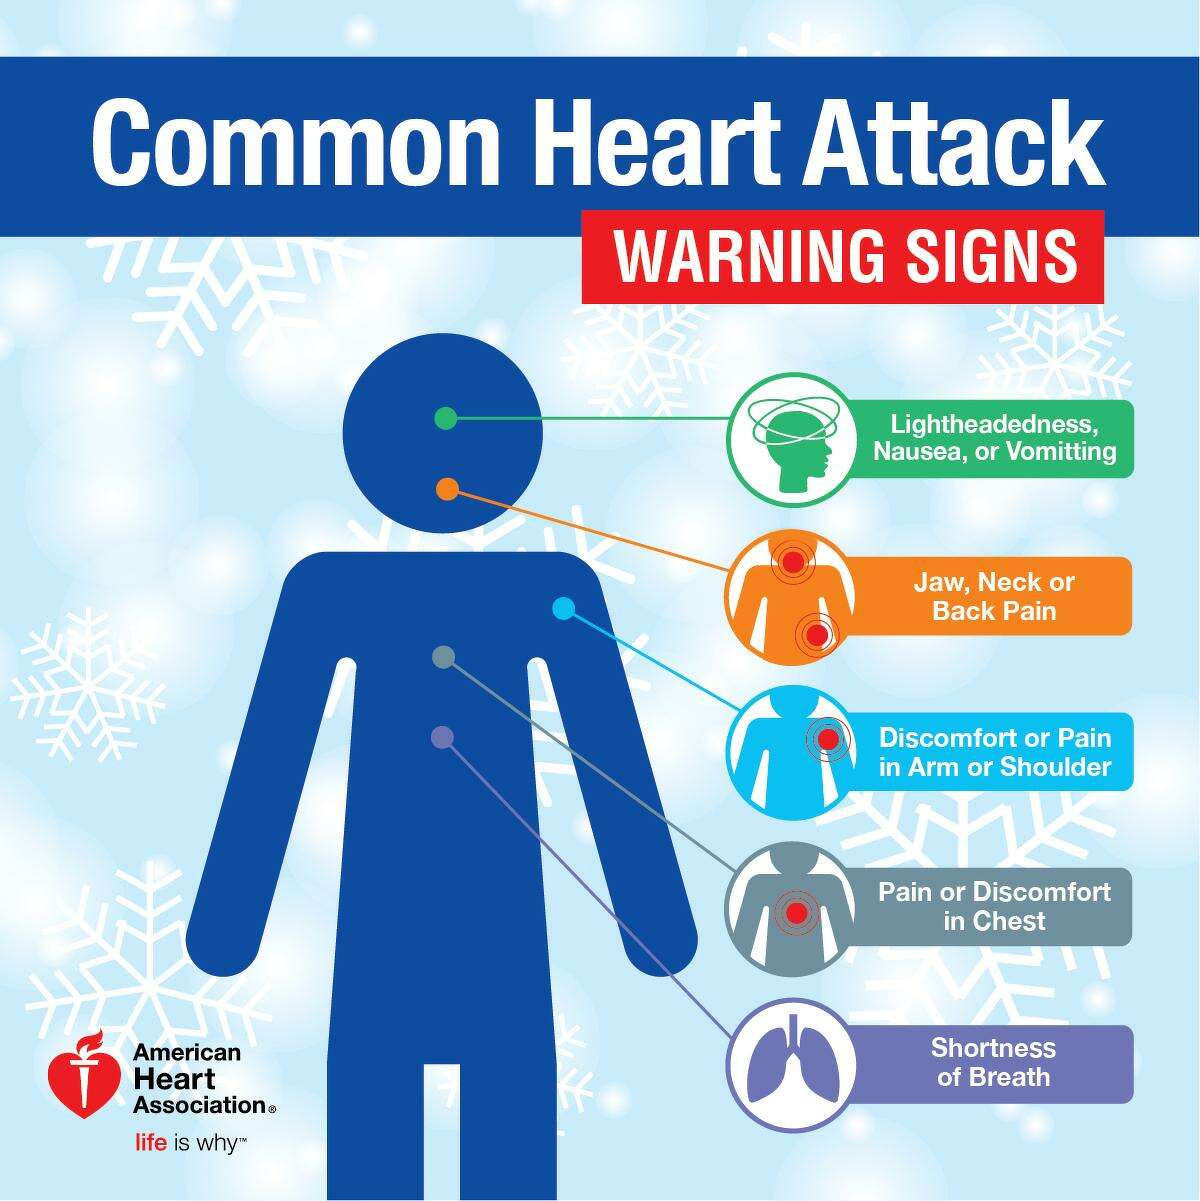 Graphic from the American Heart Association